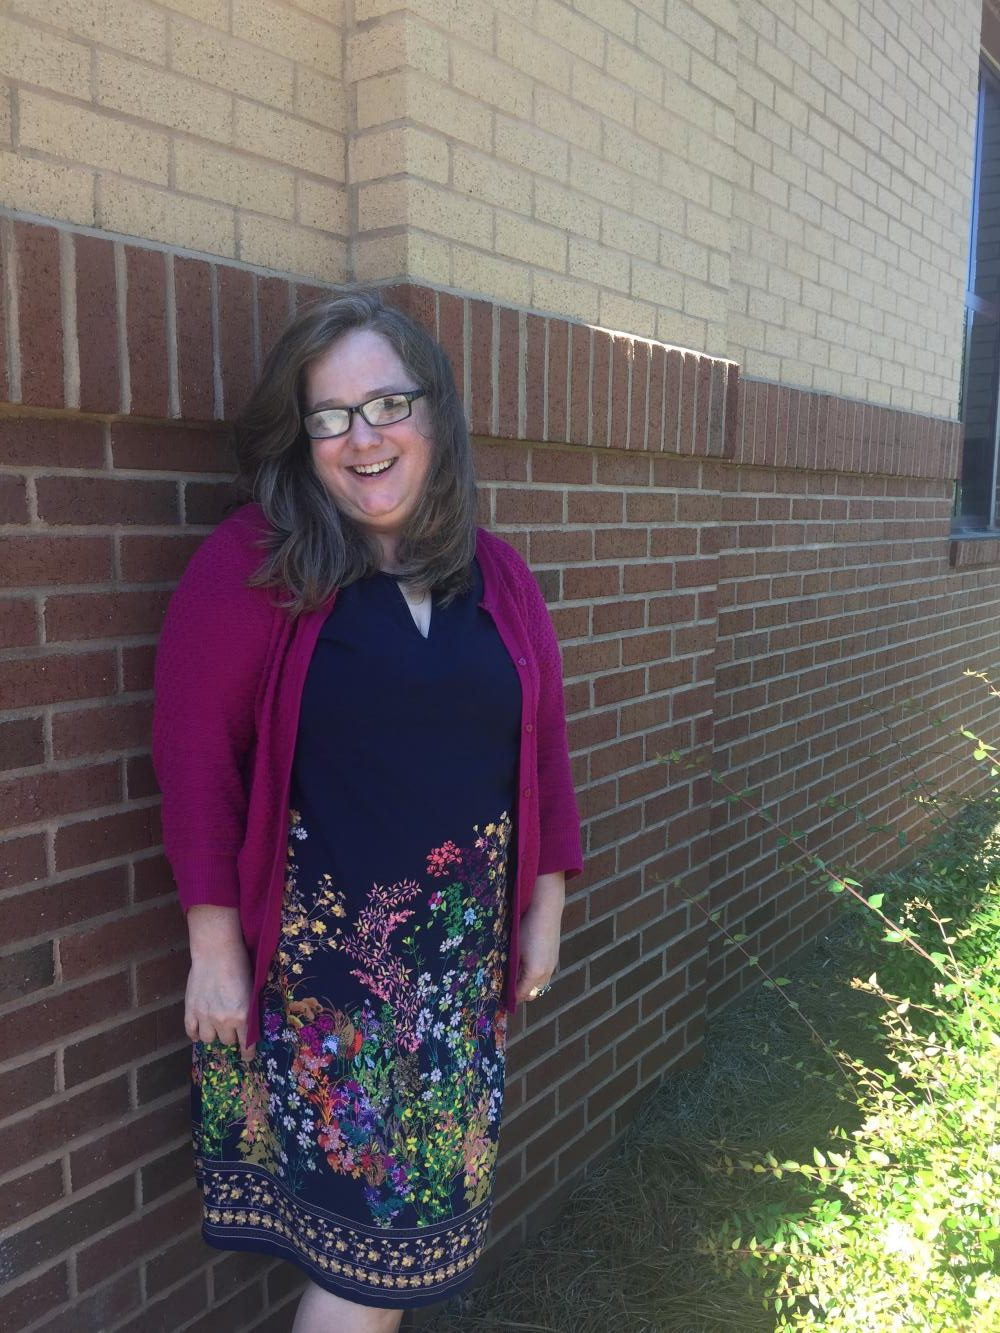 Journalism, Language and Composition, and Literature teacher, Clori Rose, poses outside for a farewell pictures as she reveals that the 2016-2017 school year is her last at Lambert.